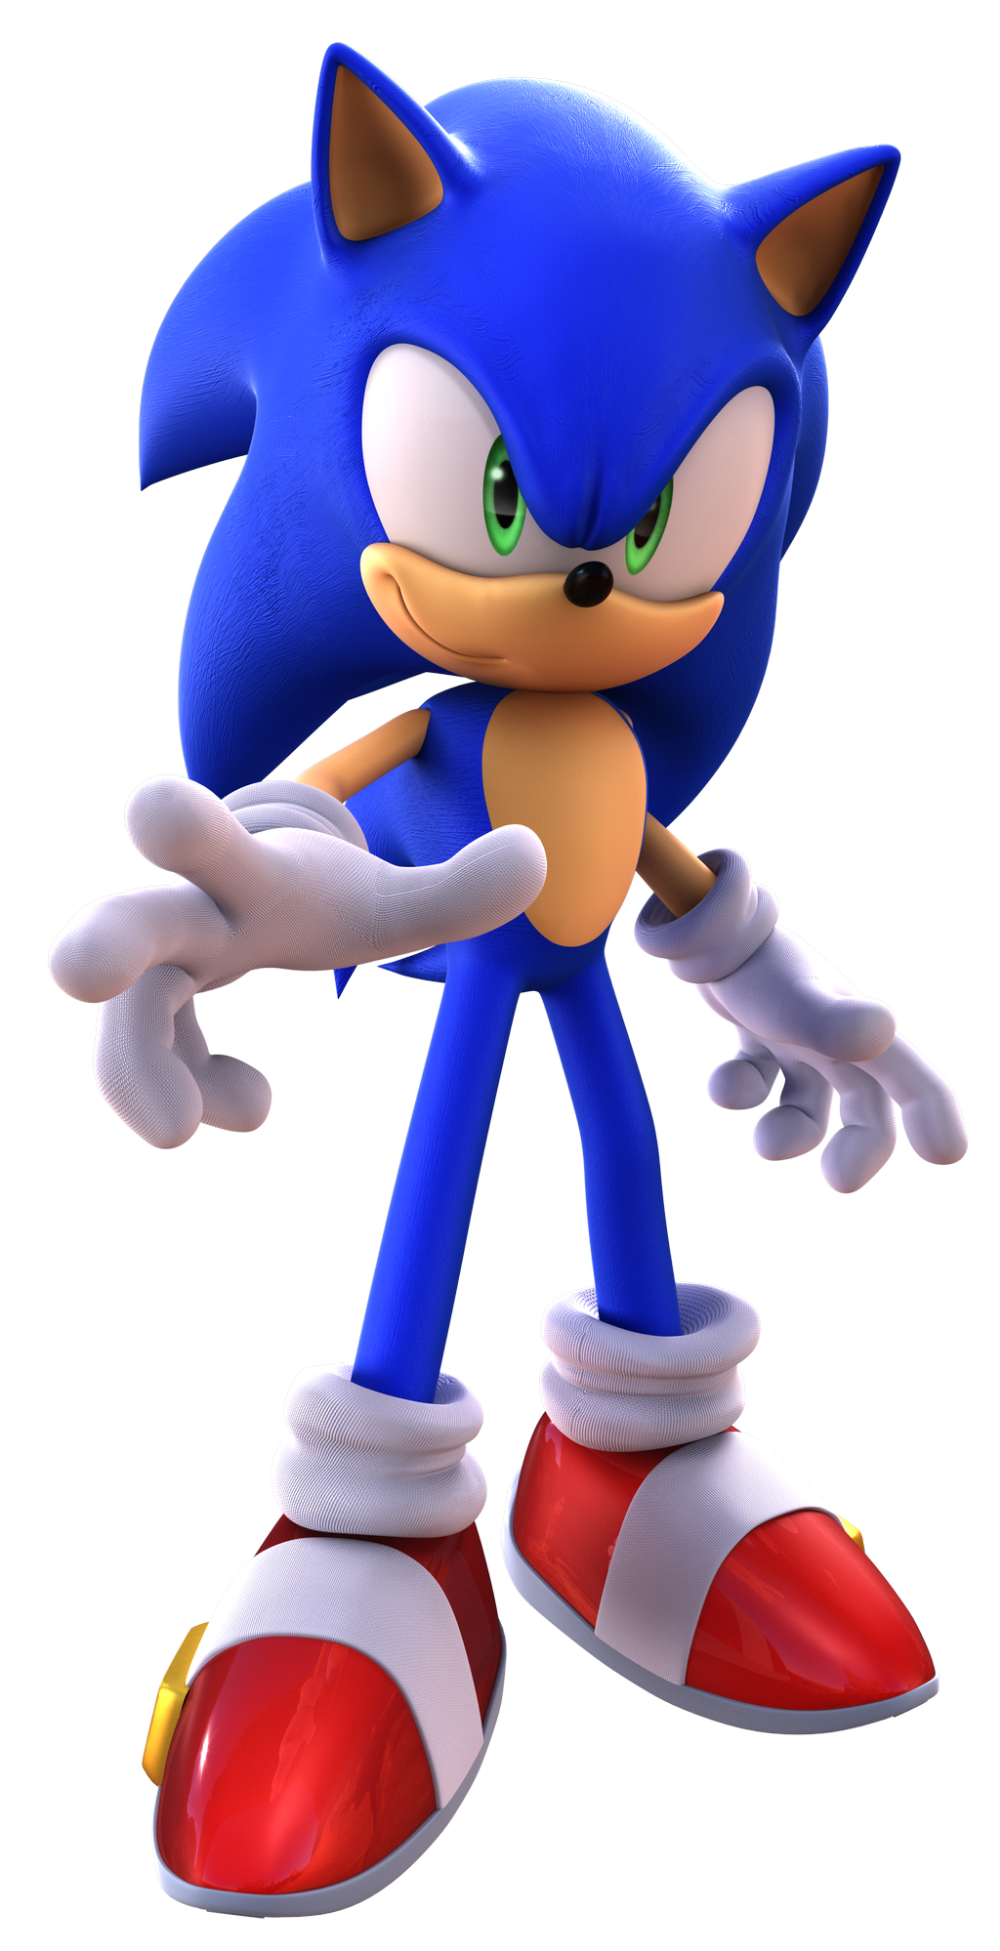 Sonic The Hedgehog 2006 Pose Render By Tbsf Yt On Deviantart